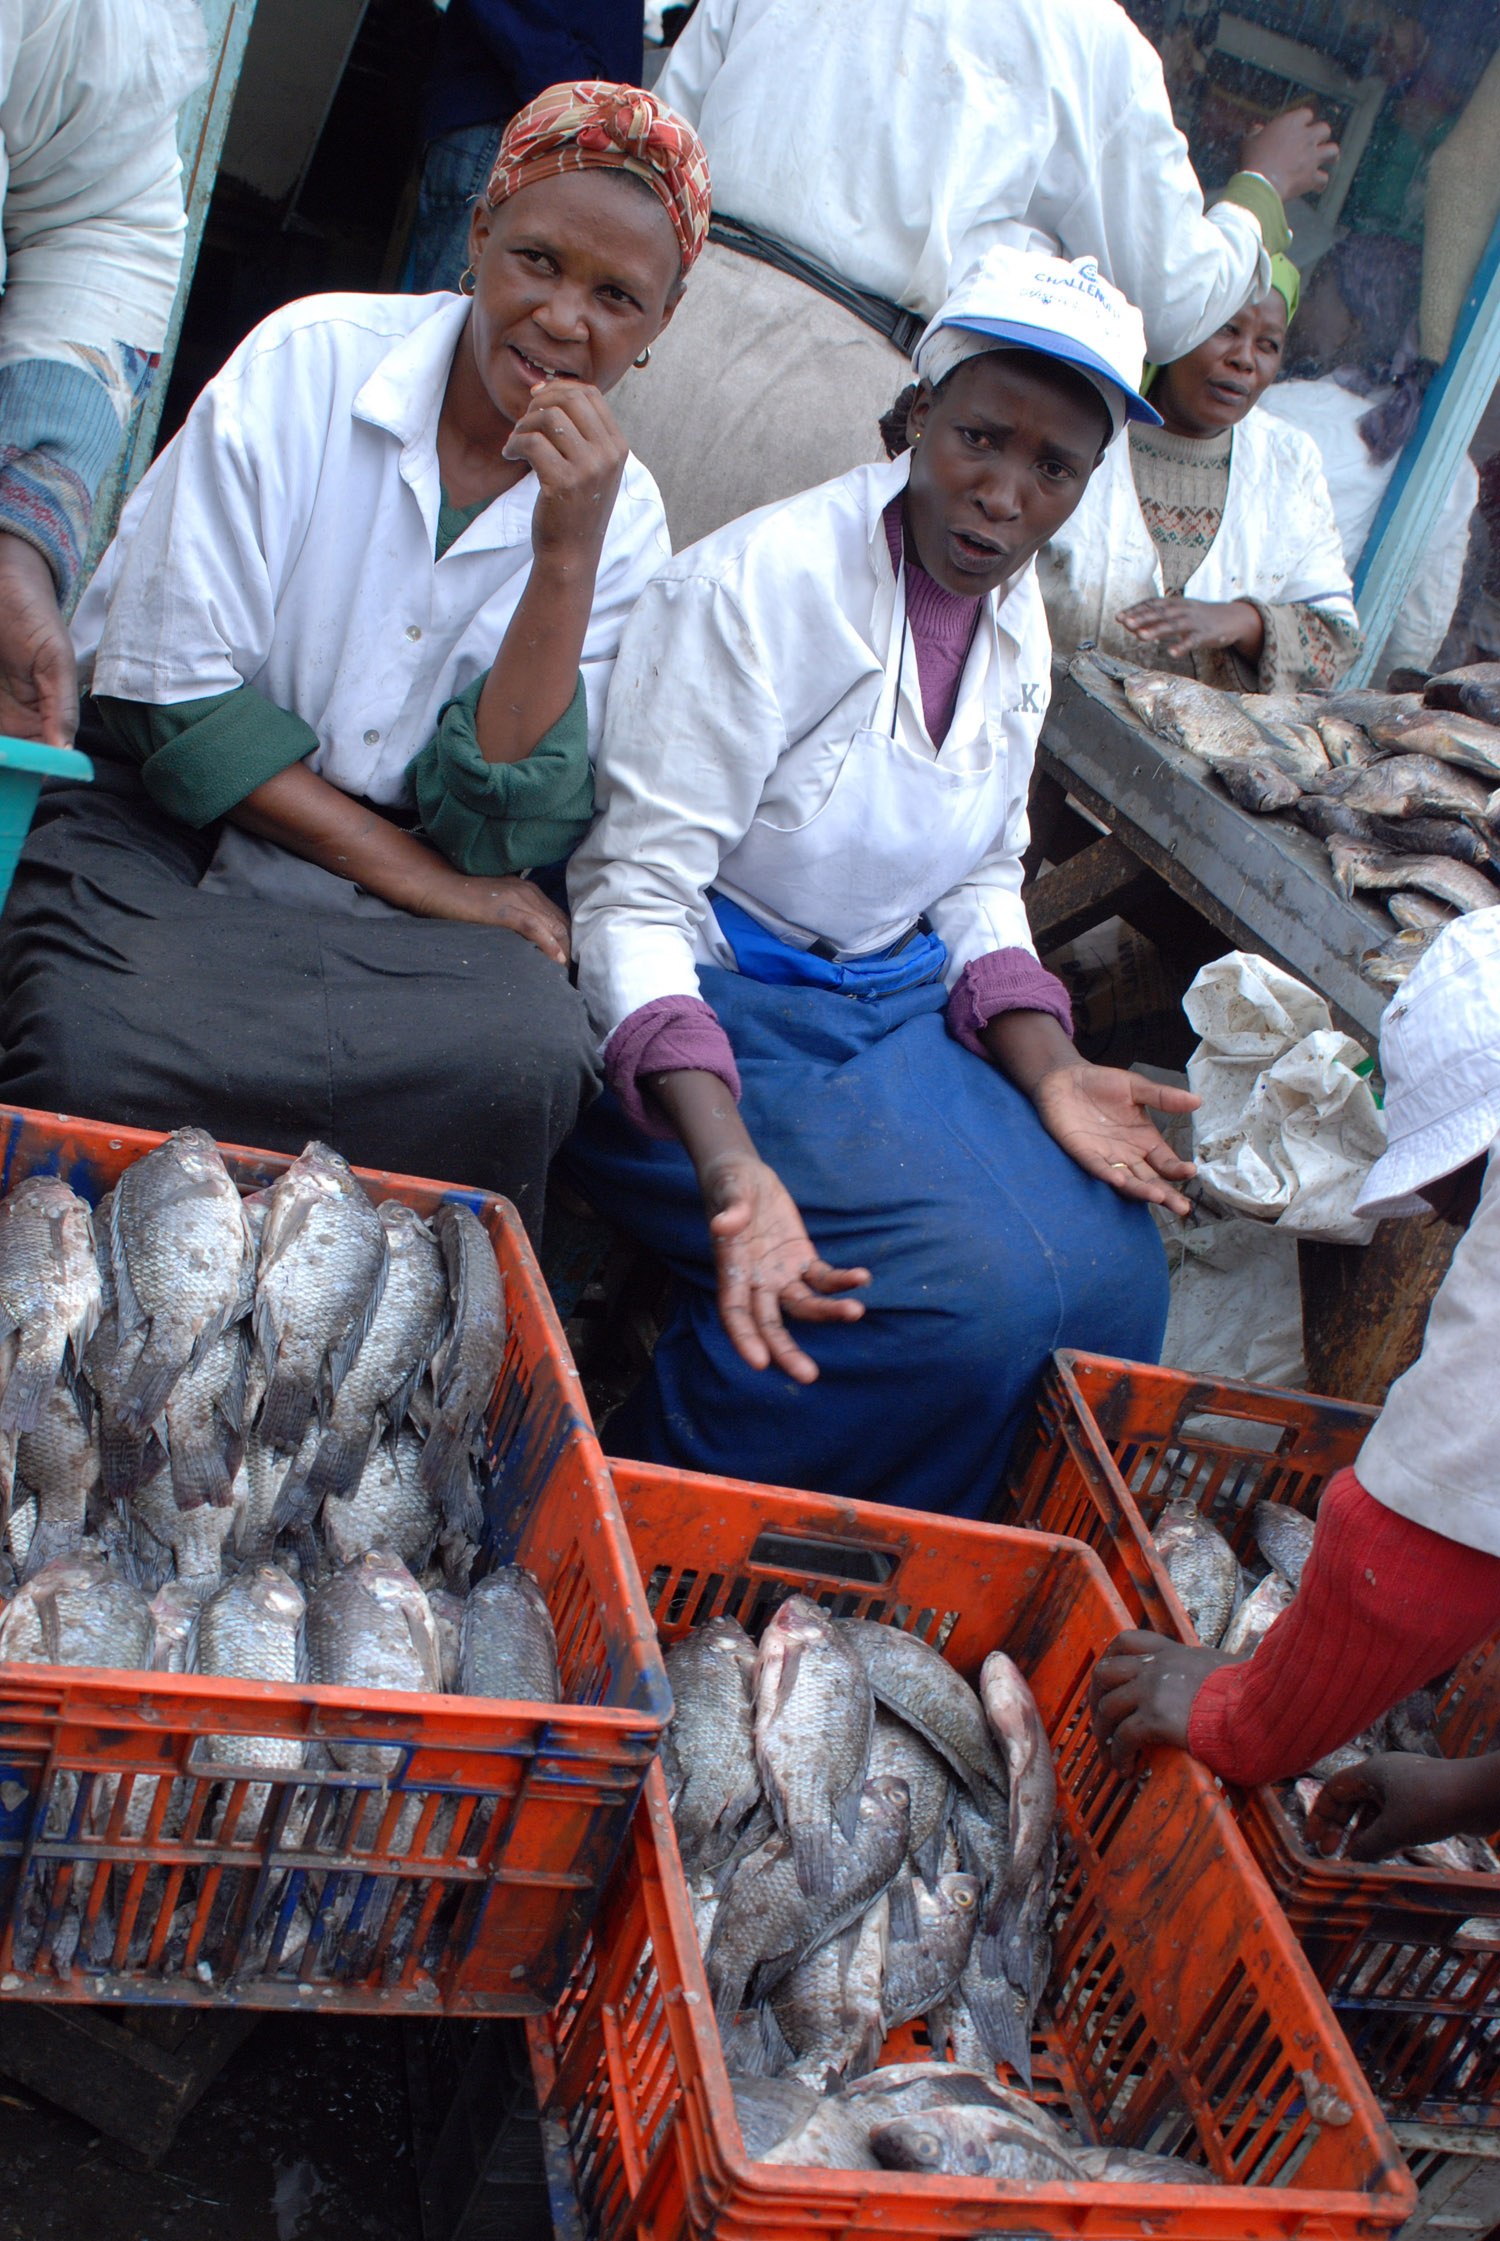 Women selling fish in Nairobi Gikomba market, Kenya 2009.Top international experts say millions of people are being pushed deeper into poverty and hunger by high food prices